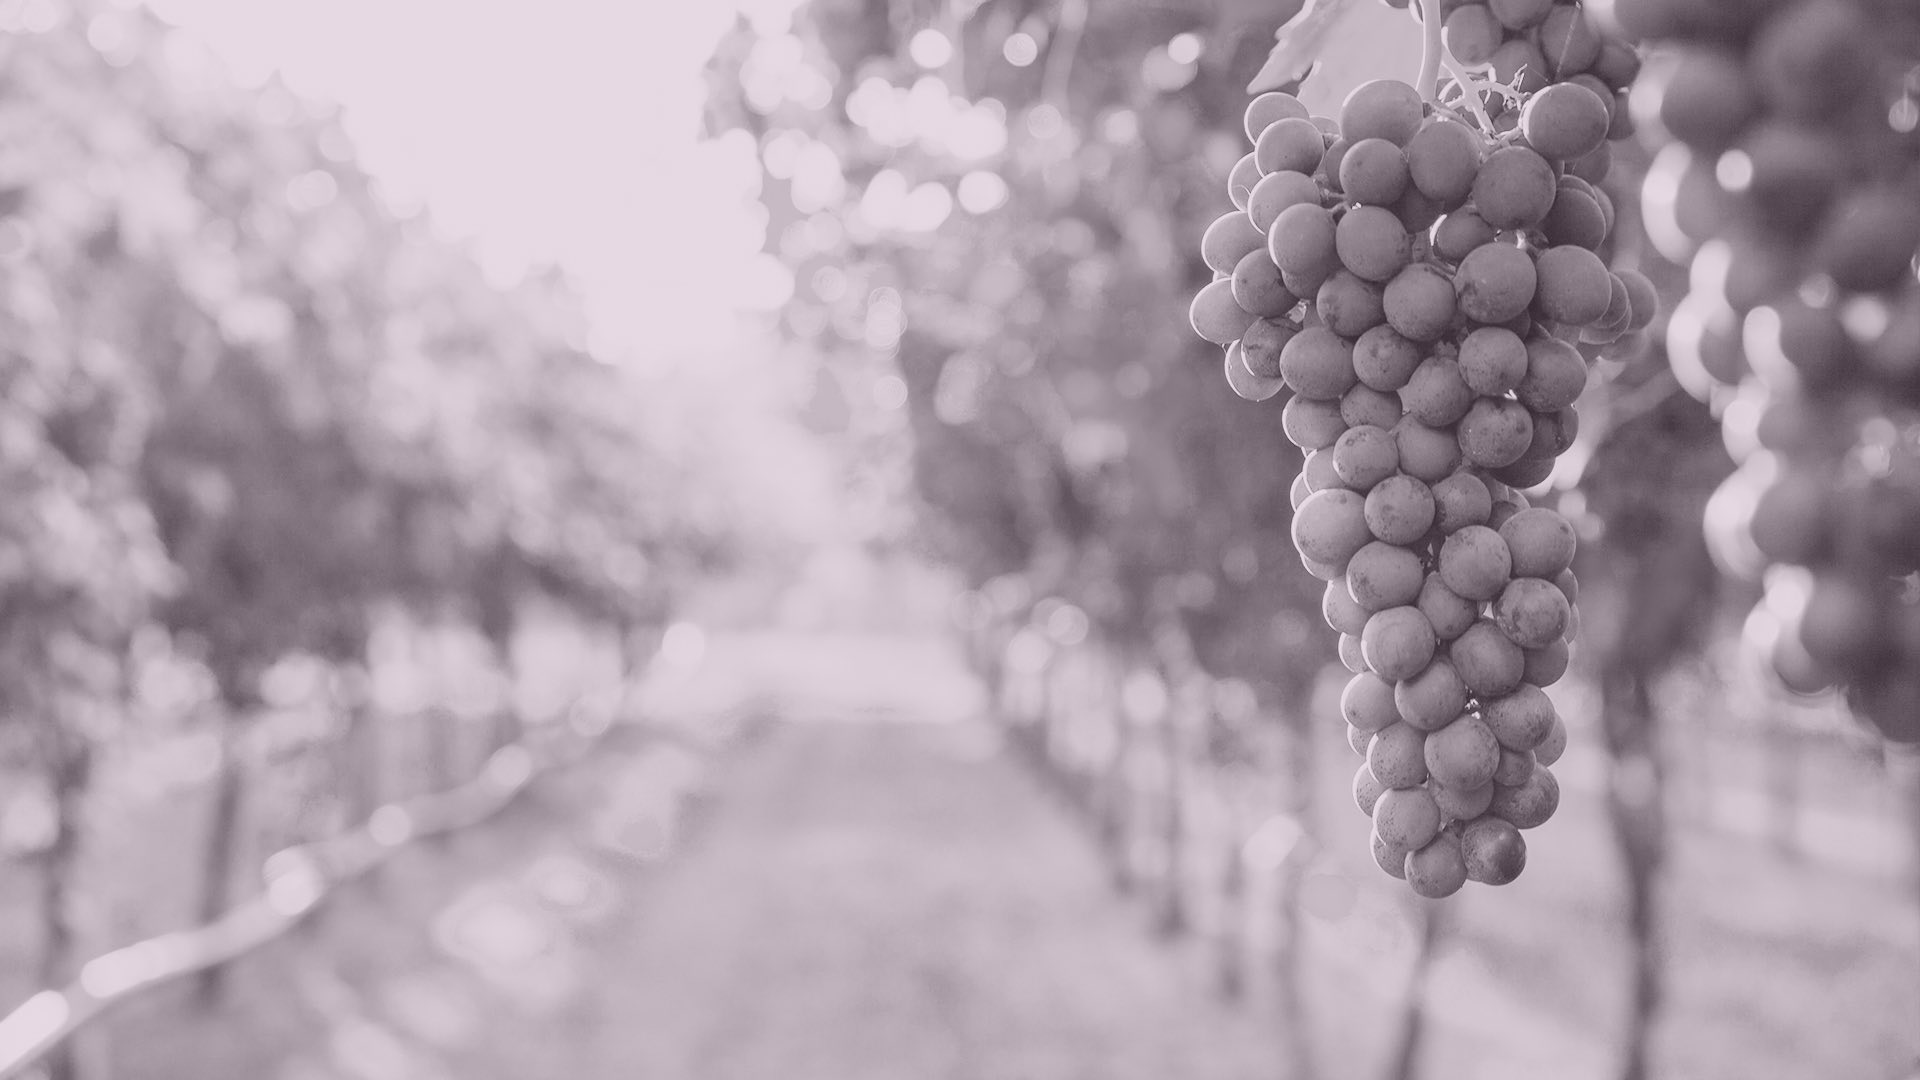 Grapes in the winery